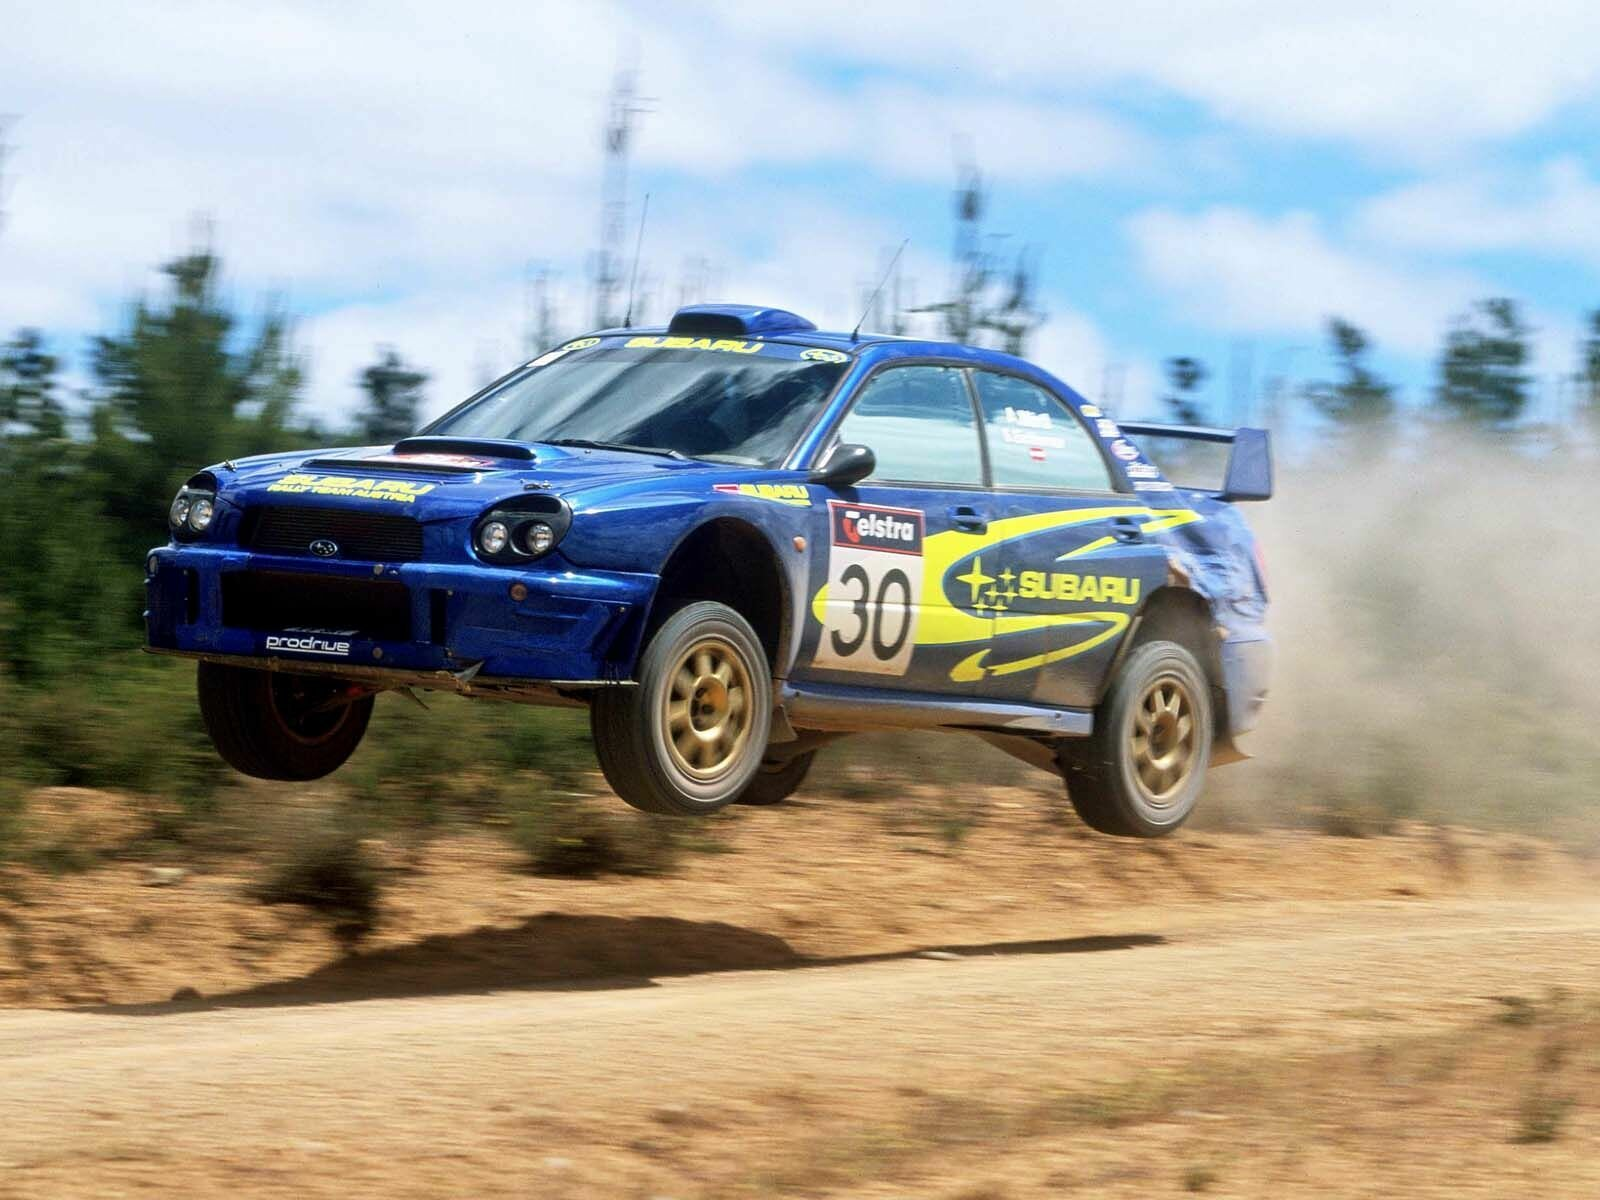 jumping rally Subaru subaru HD Wallpaper